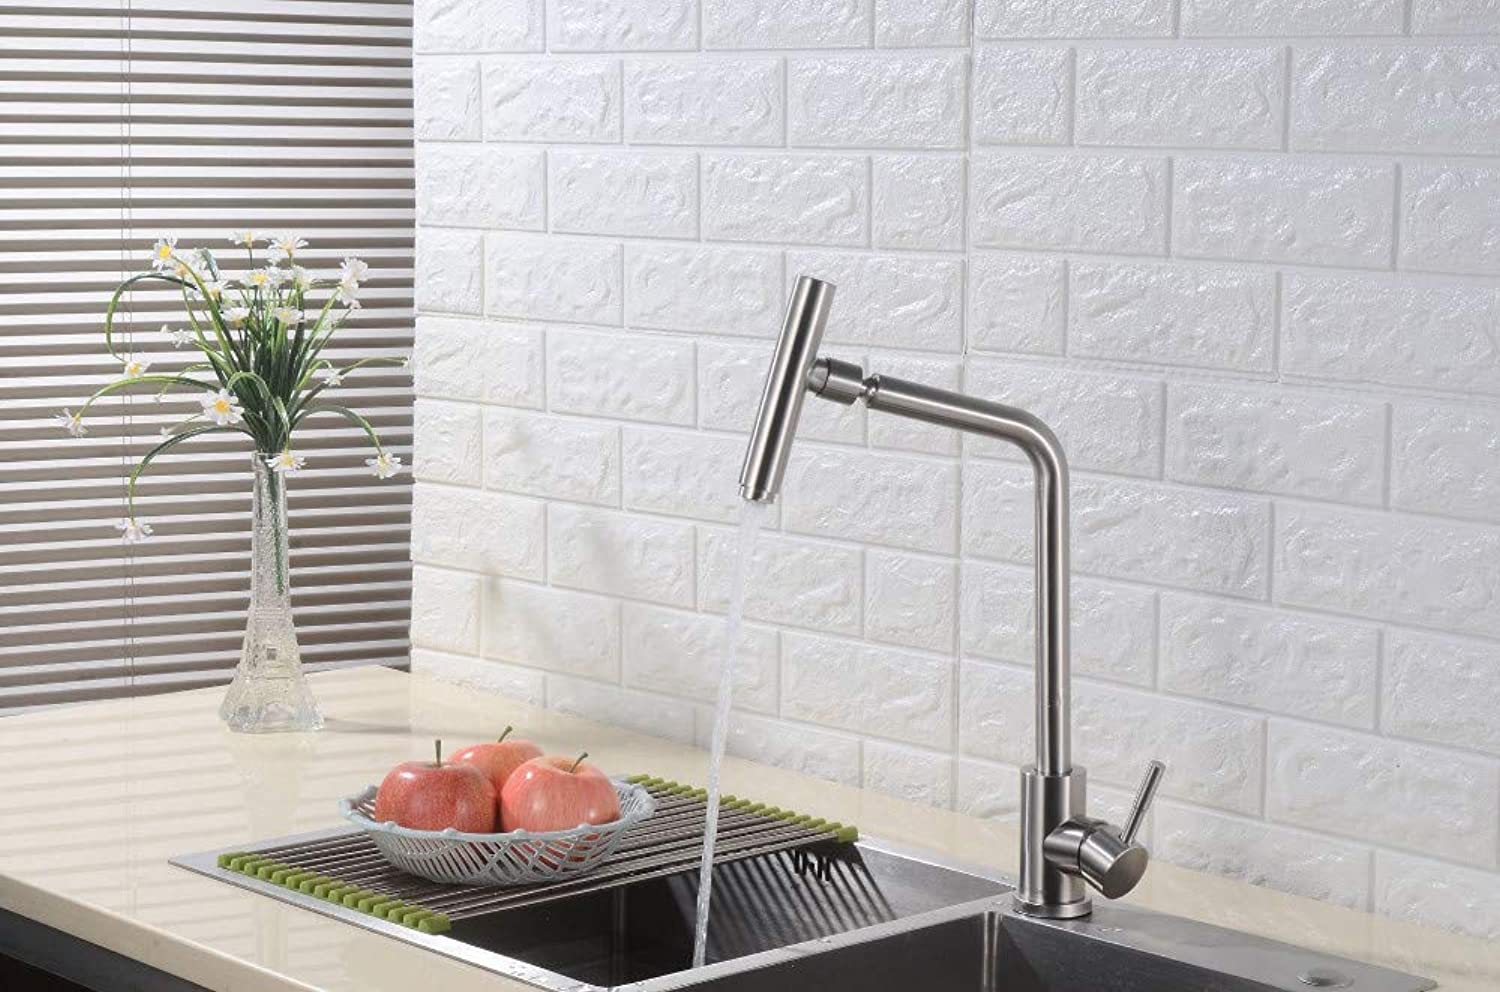 Stainless Steel Brushed 304 Million to The Sink Sink Dish Sink Faucet Kitchen Single Hole Hot and Cold